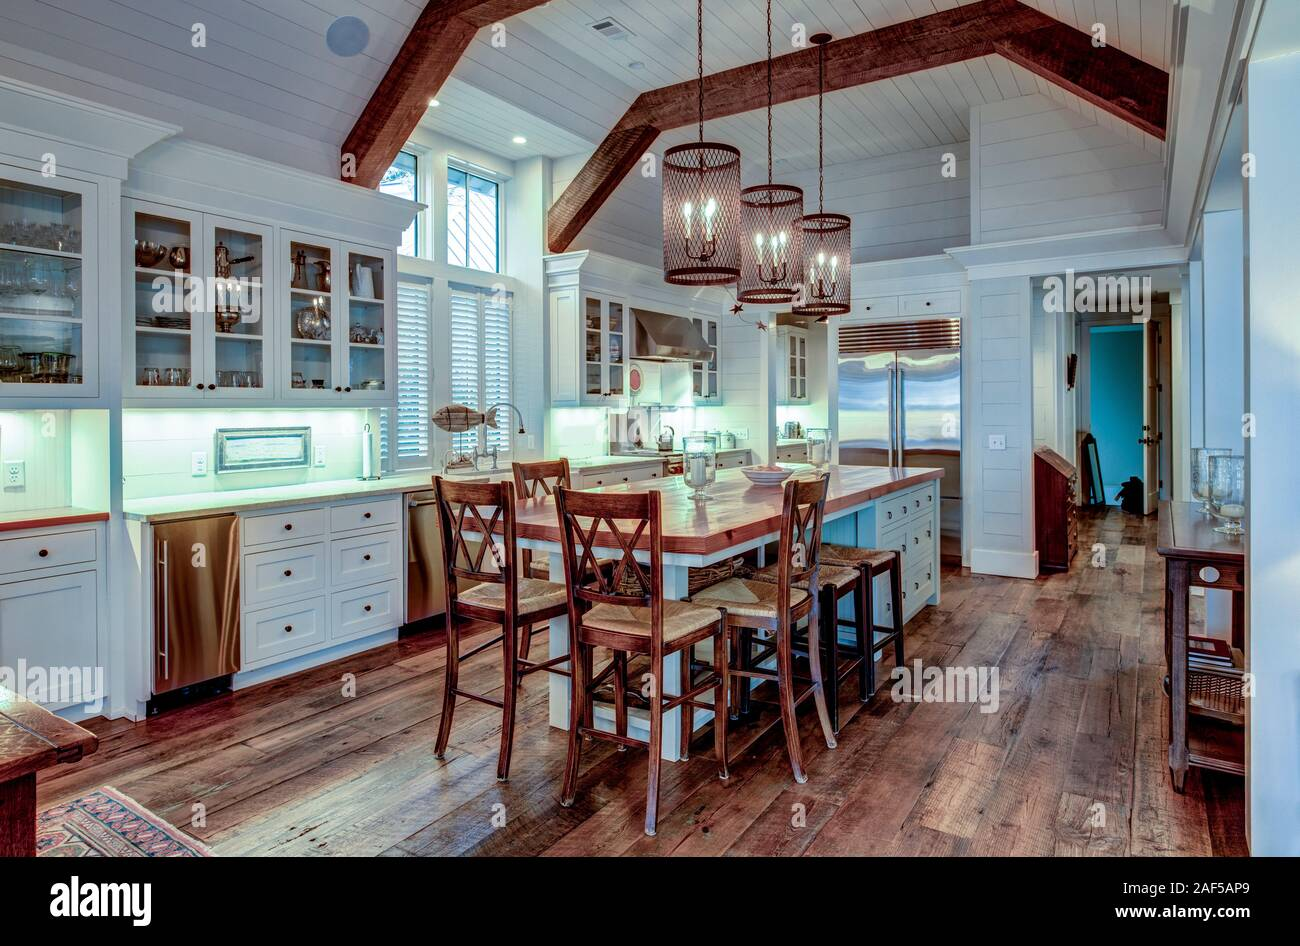 Large Expensive Chefs Kitchen In Luxury Home With Rough Hewn Wood